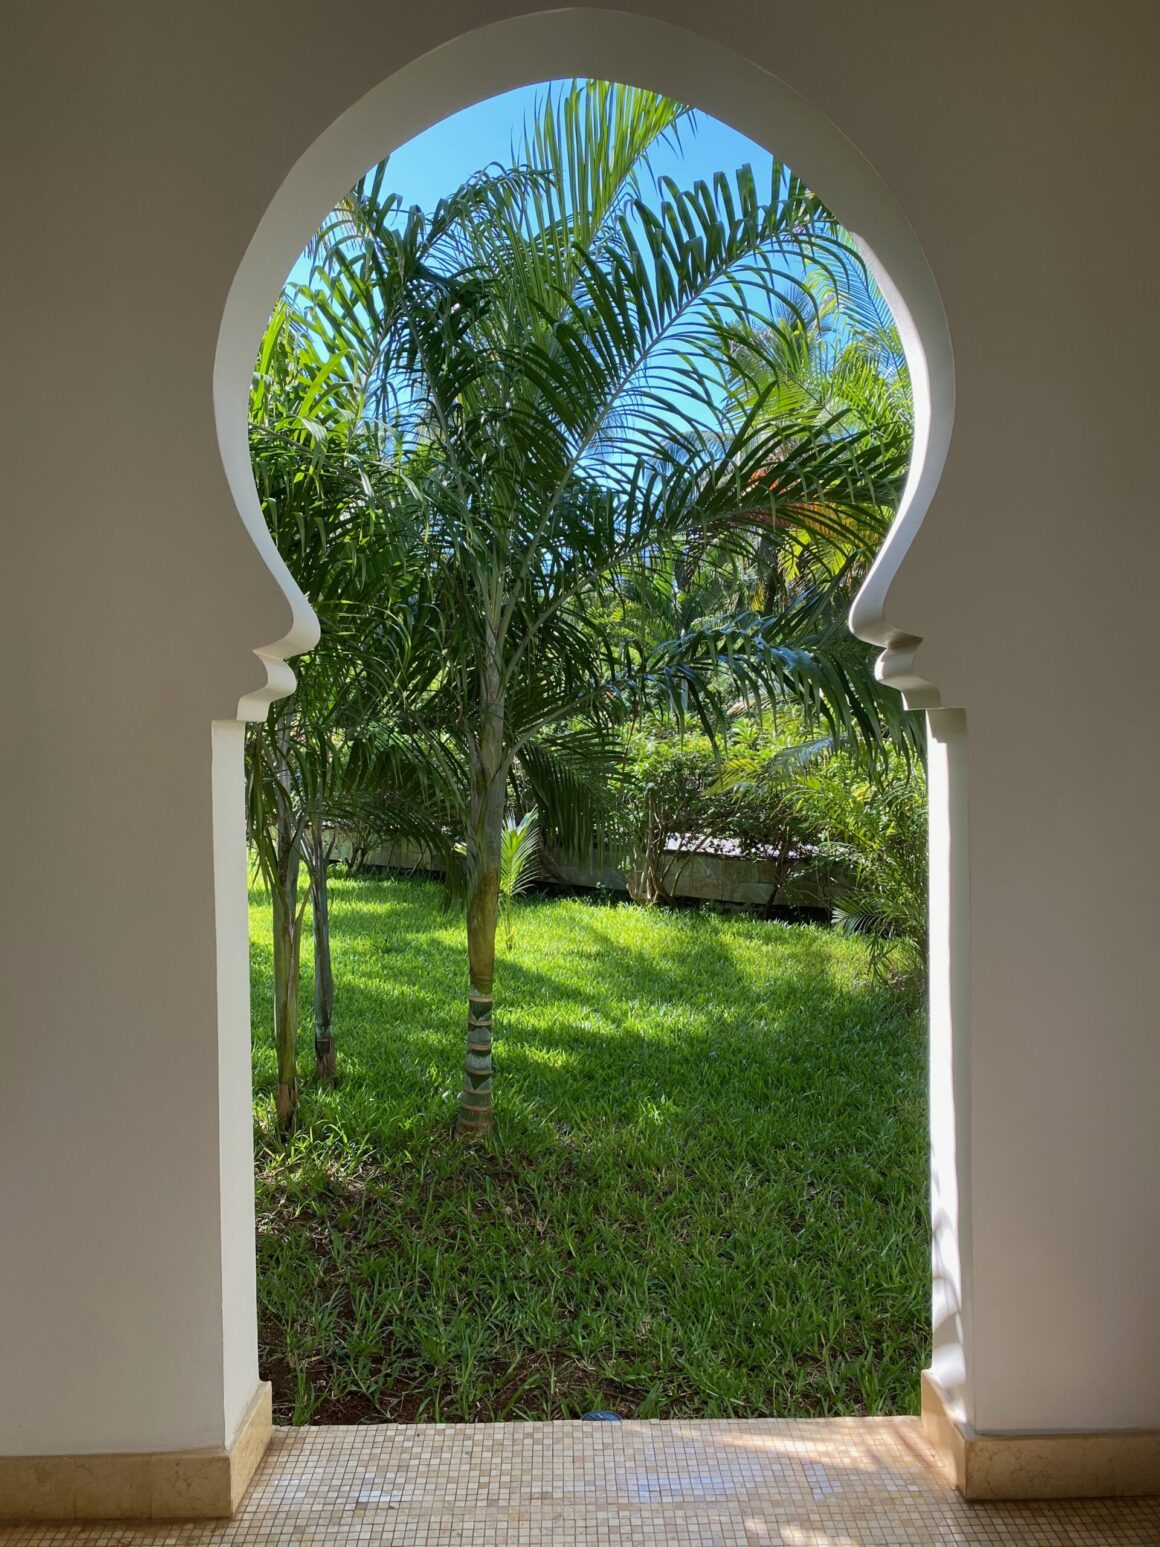 baraza resort archways during the day